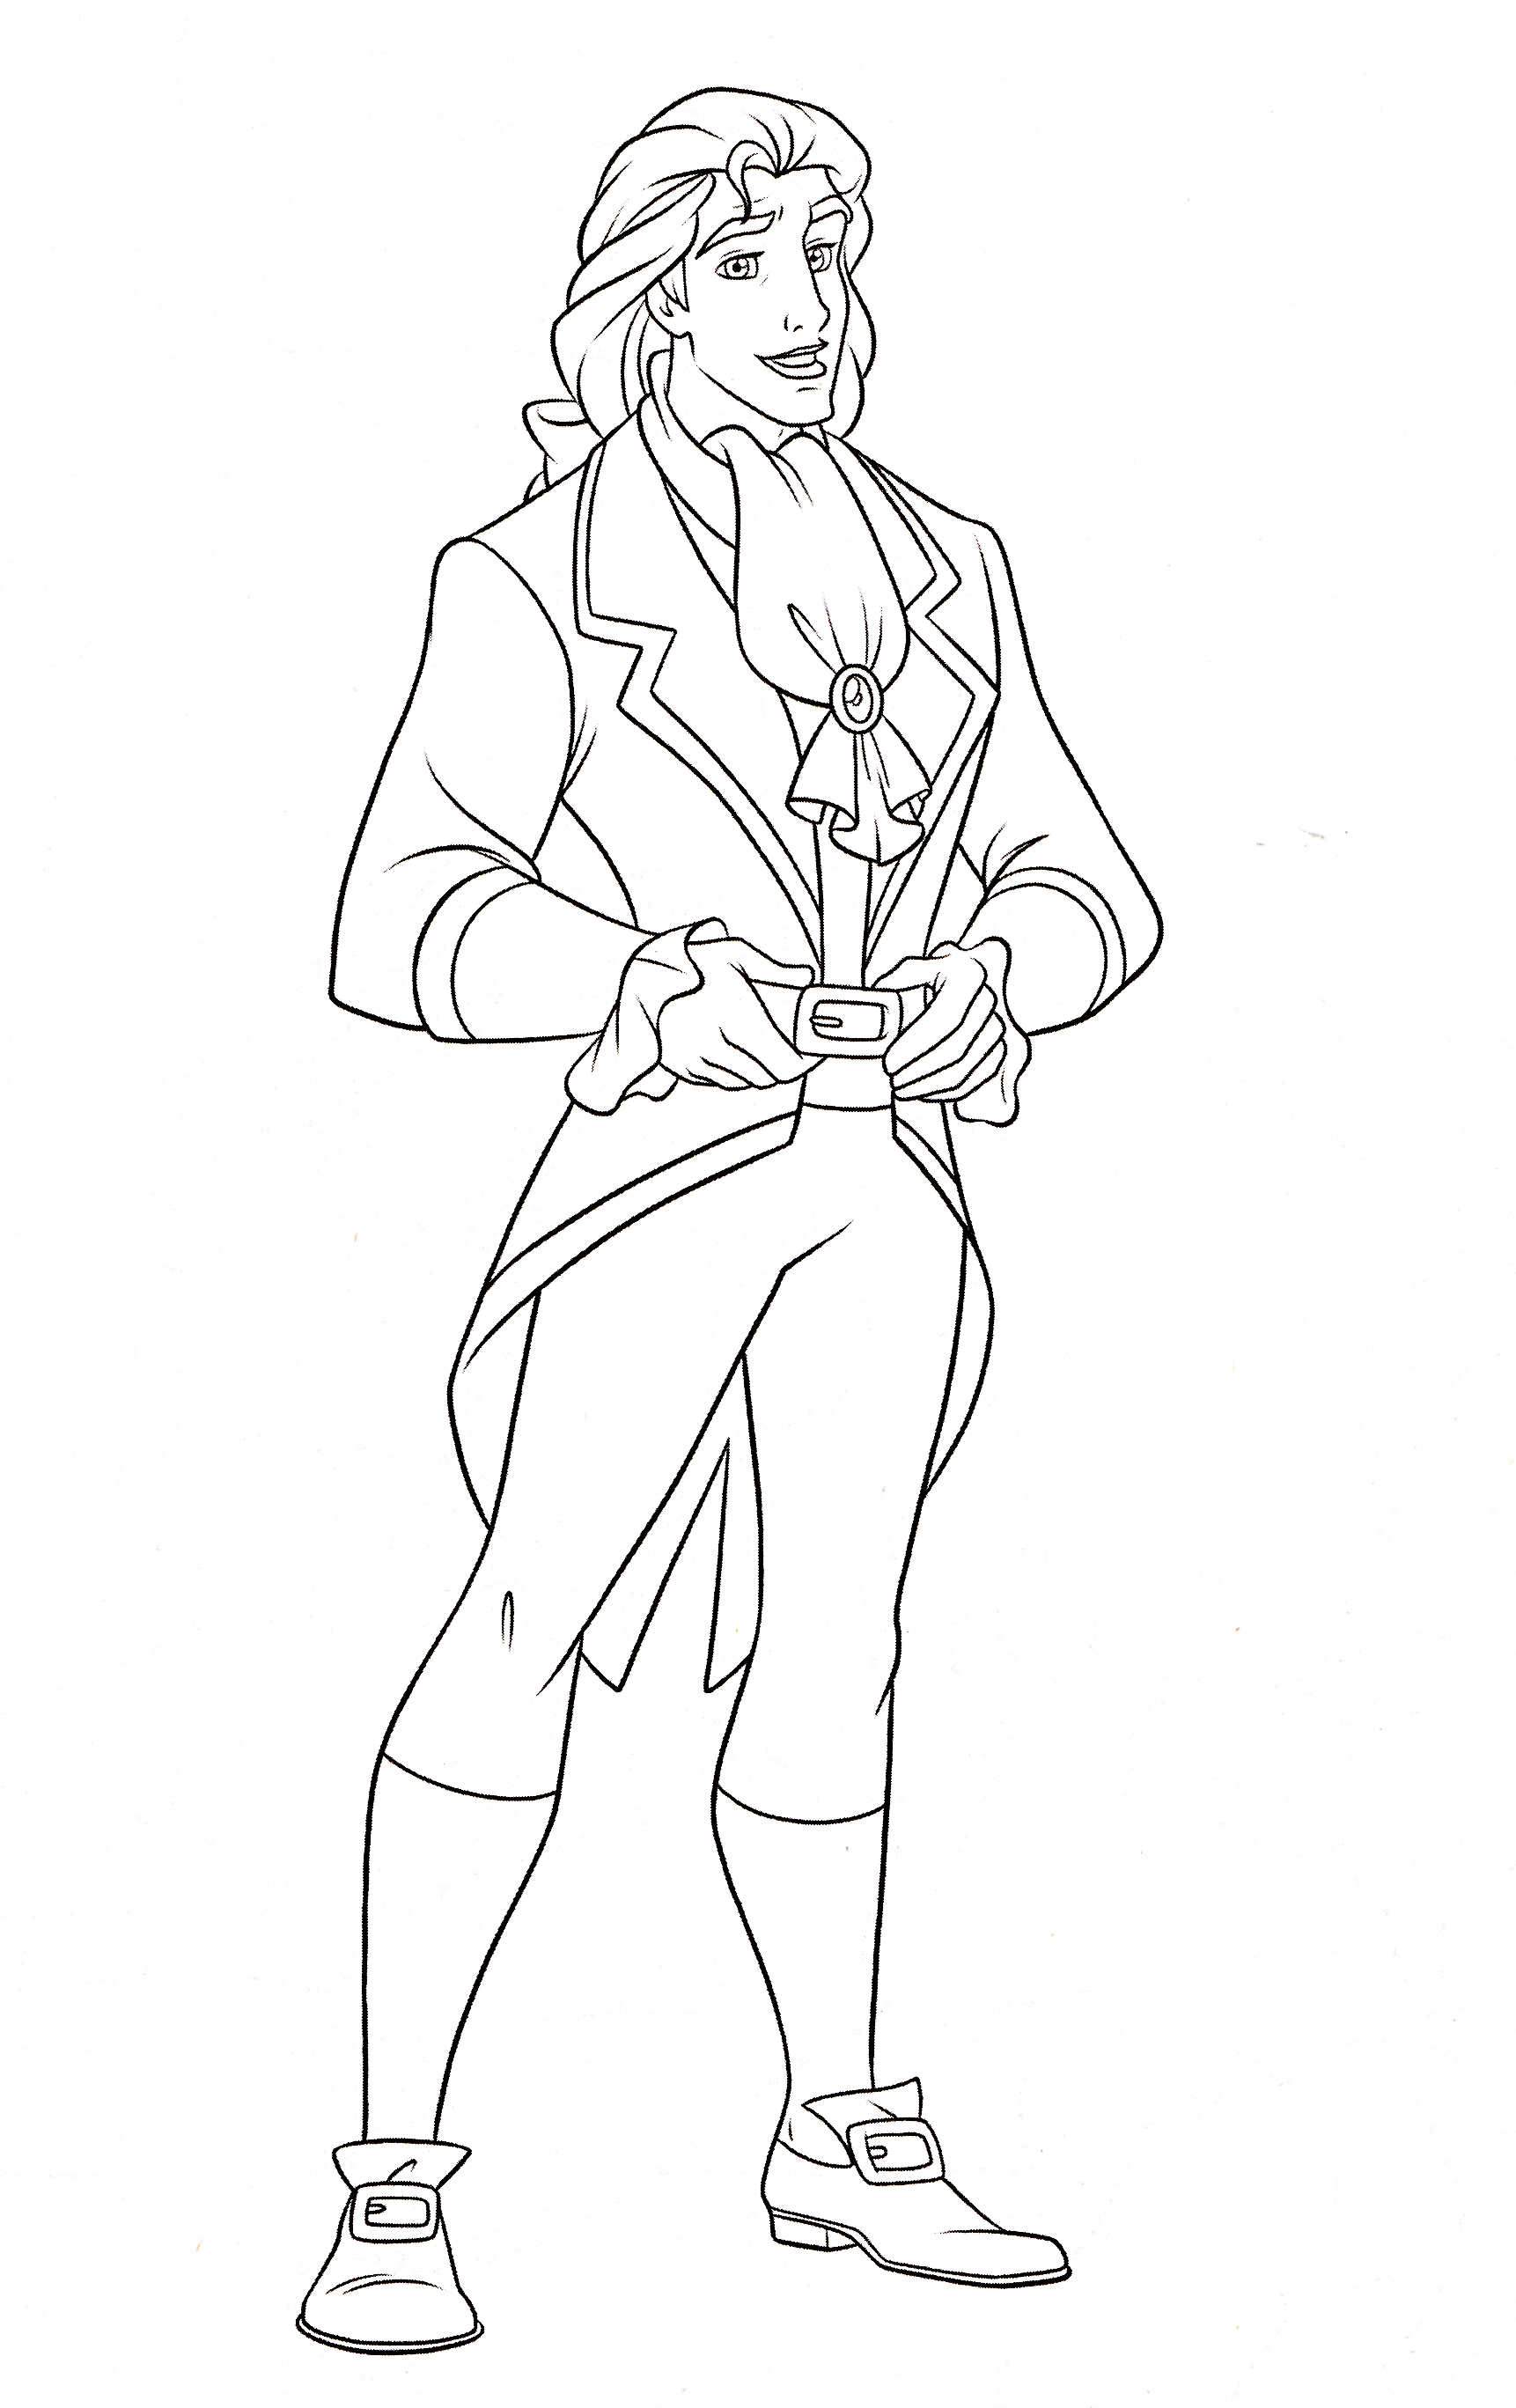 This is a photo of Gorgeous Prince Coloring Page